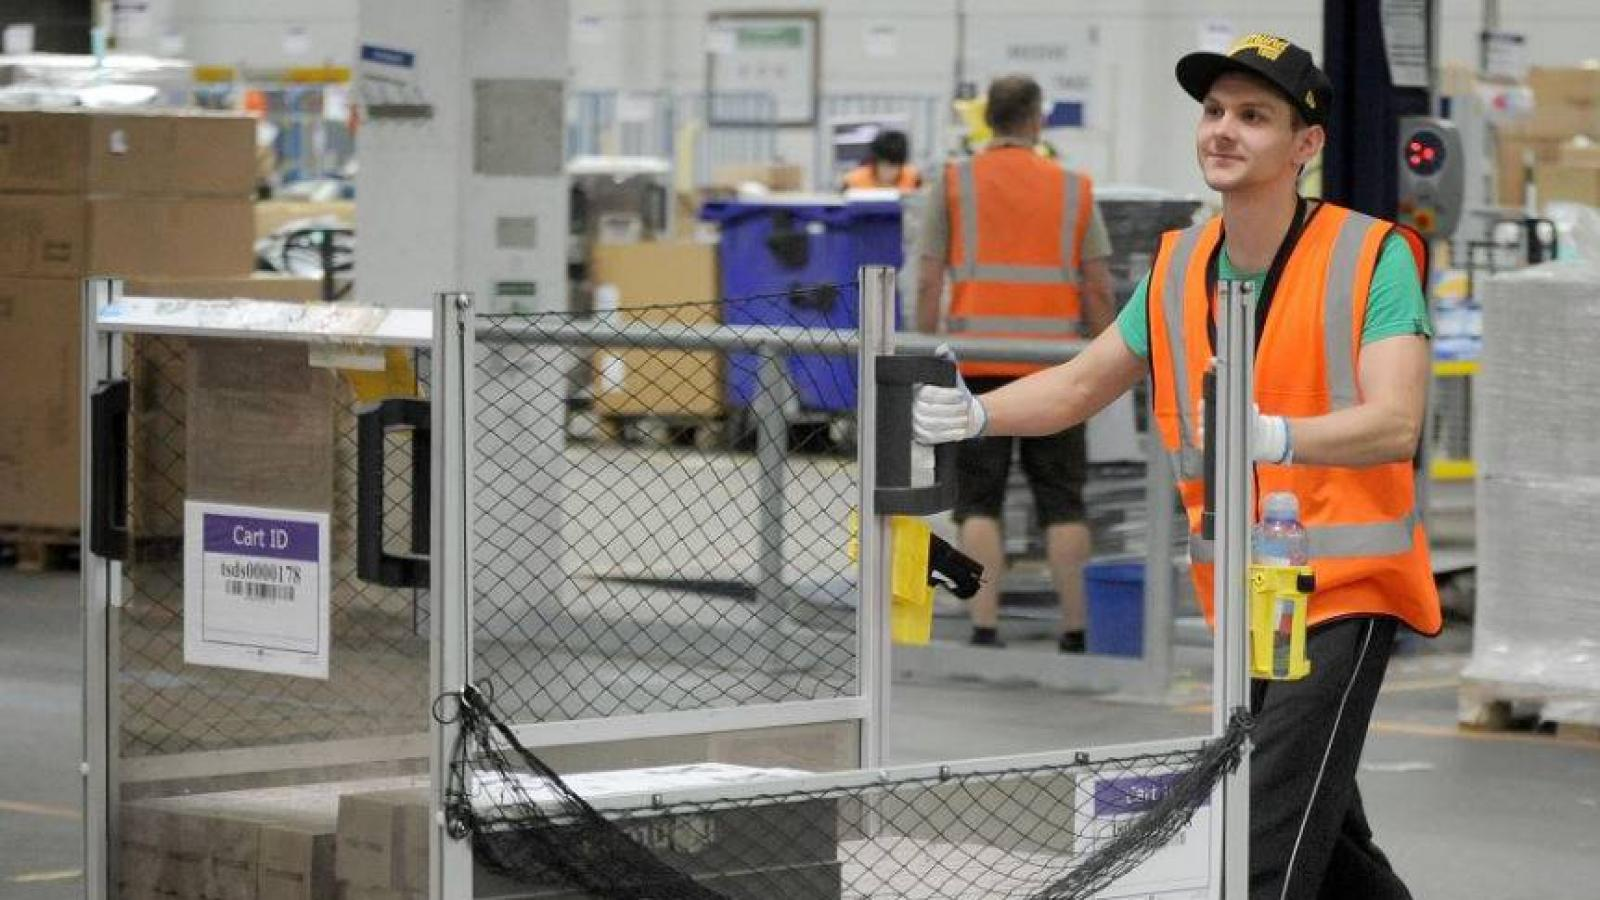 Amazon's logistics centre